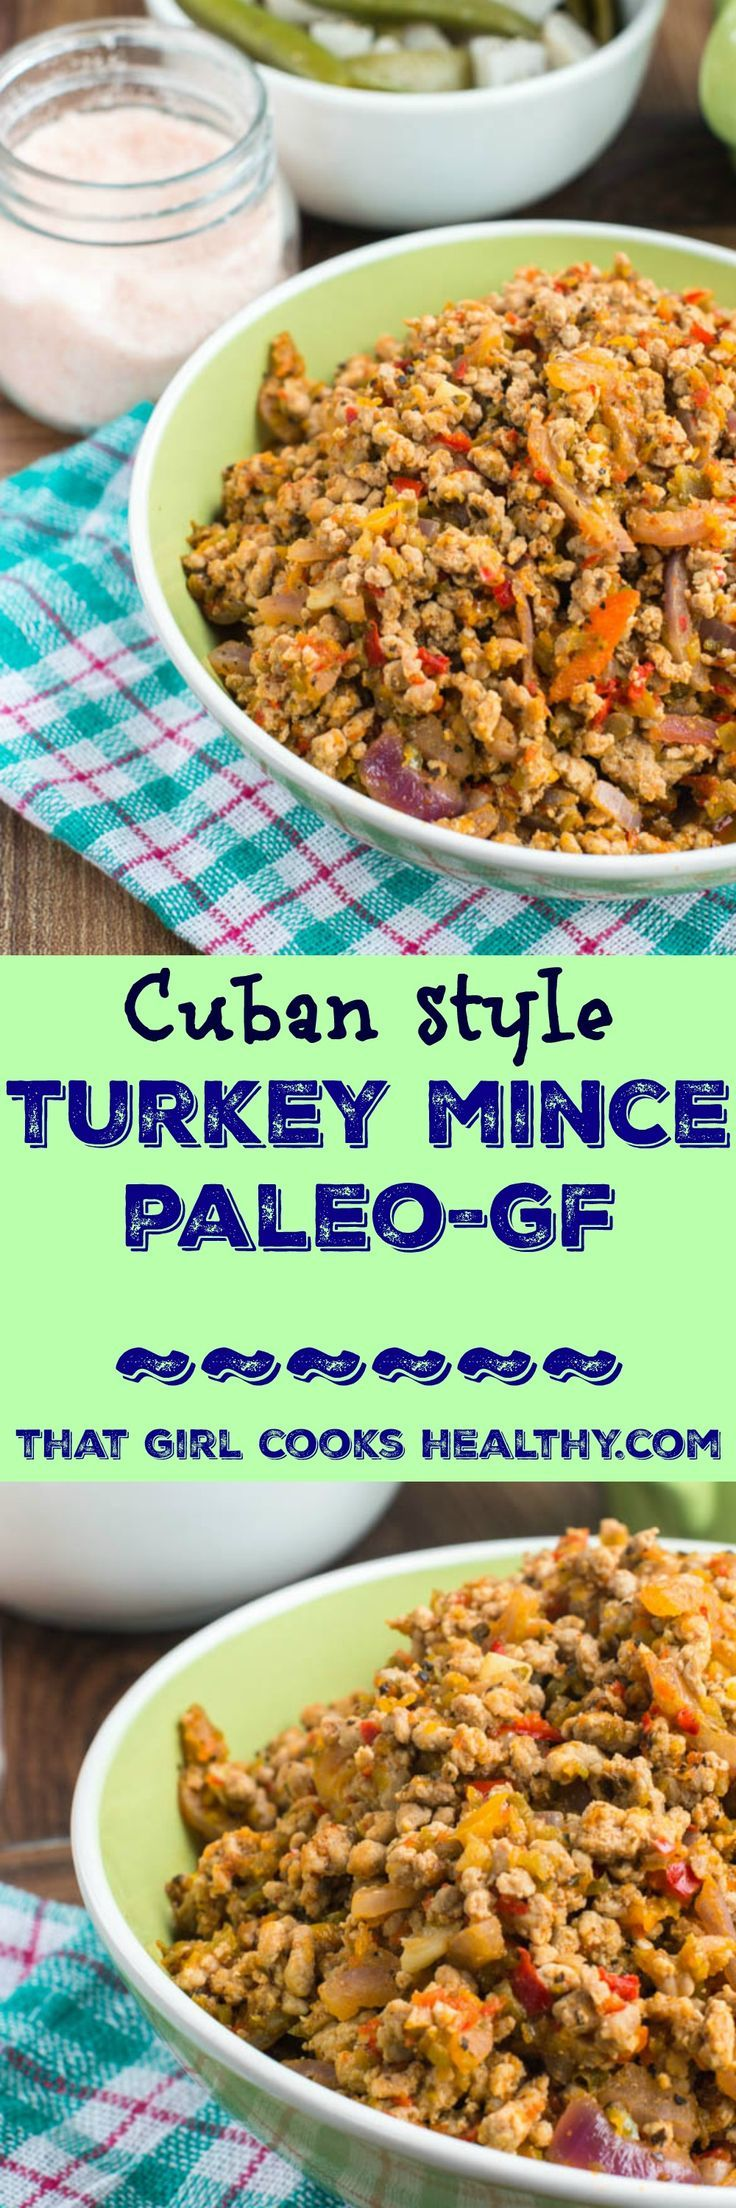 Turkey mince (Cuban style) | Recipe | Turkey mince, Mince ...